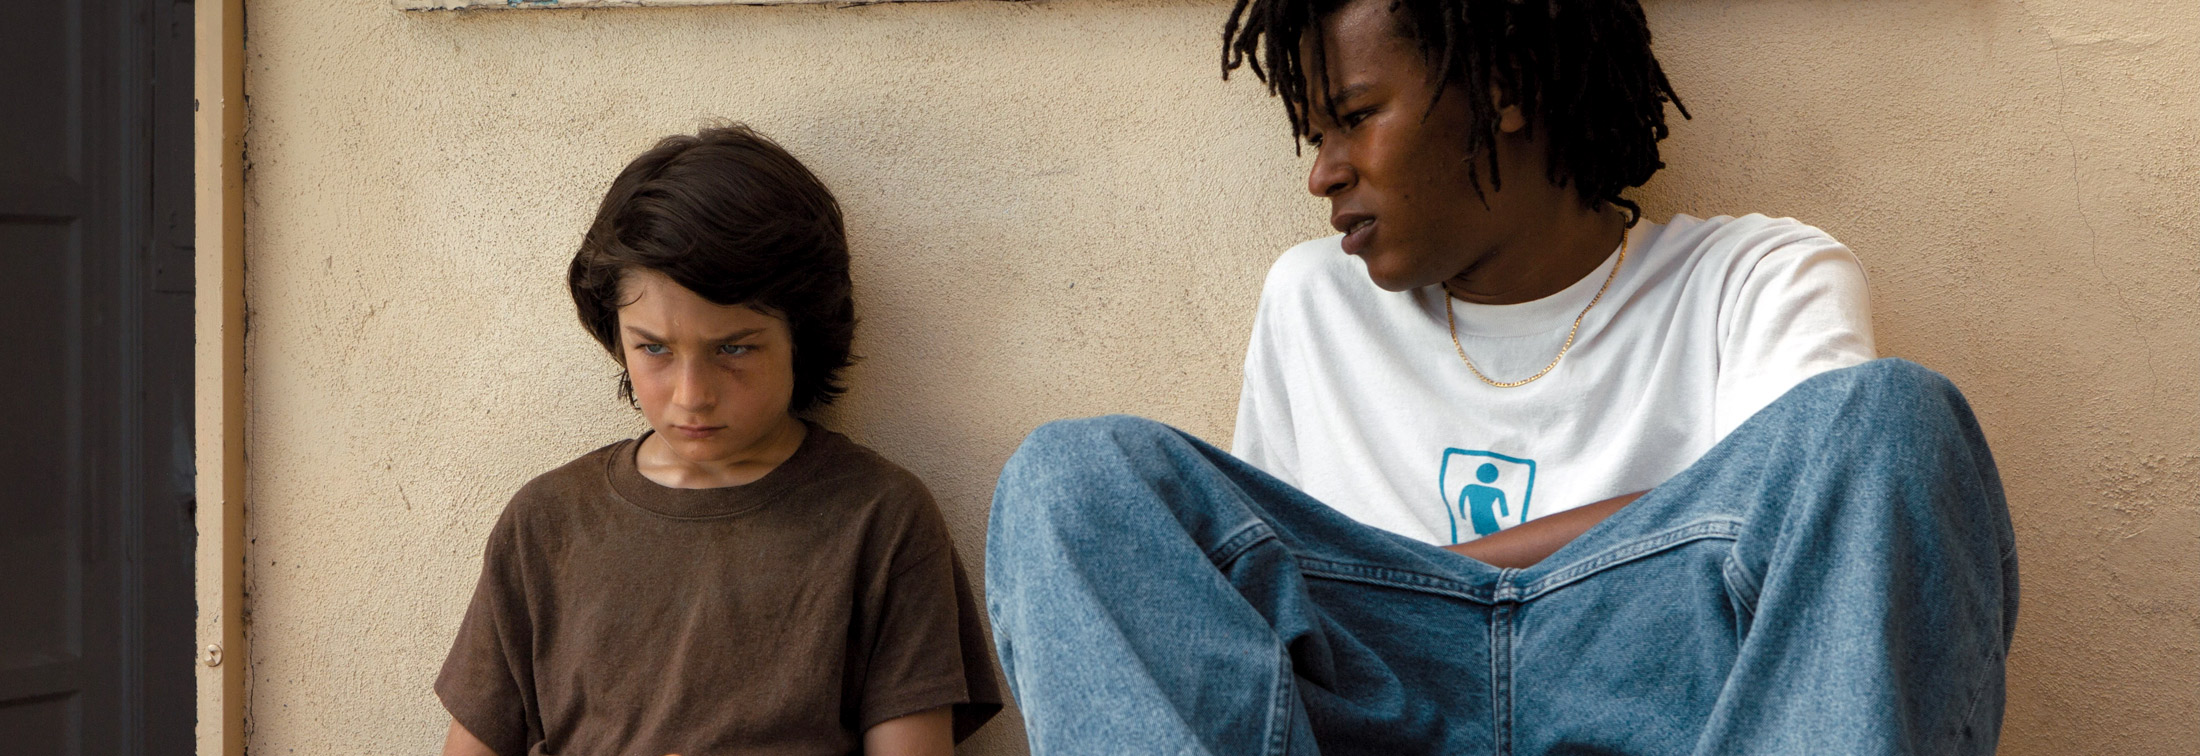 review, mid90s, mid90s, film, movie, latest movies, new movie, movie ratings, current movie reviews, latest films, recent movies, current movies, movie critics, new movie reviews, latest movie reviews, latest movies out, the latest movies, review film, latest cinema releases, Australian reviews, cinema, cinema reviews, Sunny Suljic, Katherine Waterston, Lucas Hedges, Na-Kel Smith, Olan Prenatt, Gio Galicia, Ryder McLaughlin, Alexa Demie, Fig Camila Abner, Liana Perlich, Jonah Hill